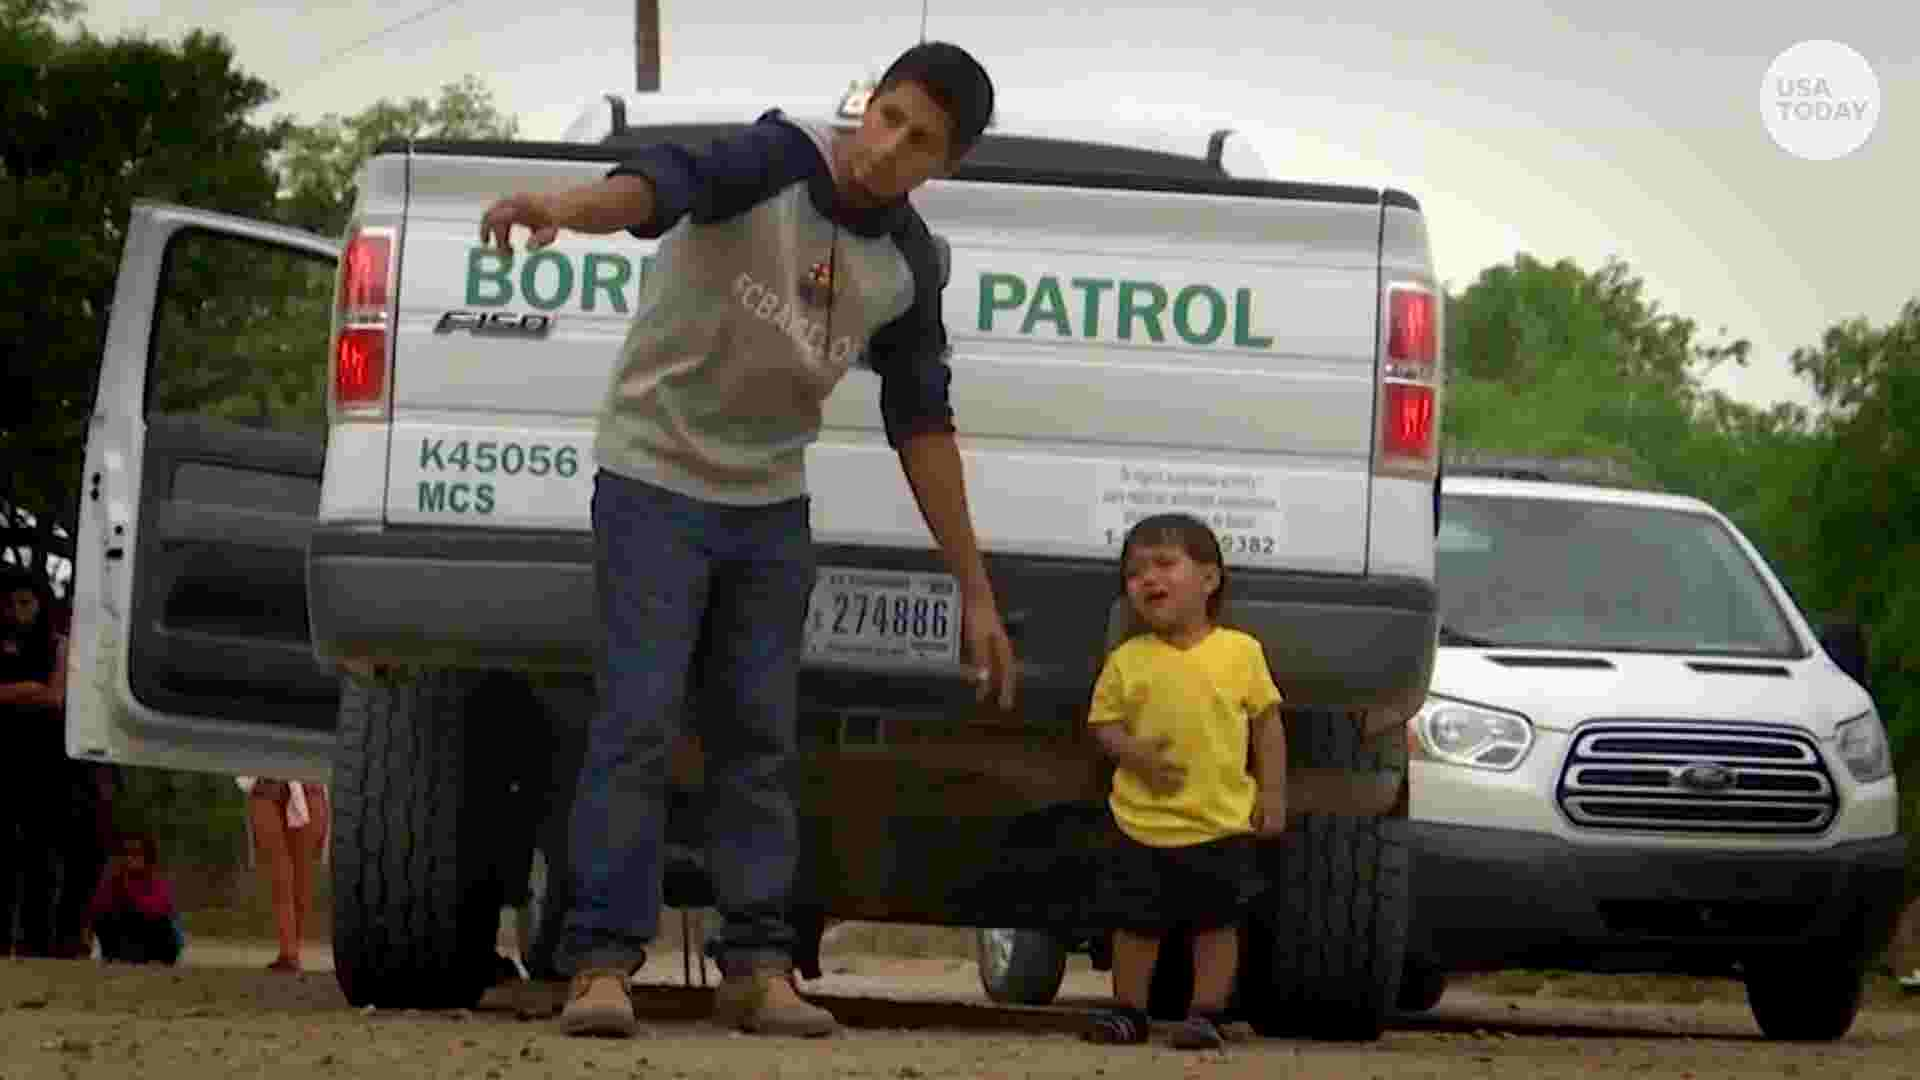 5 must-knows about the current crisis on U S  southern border